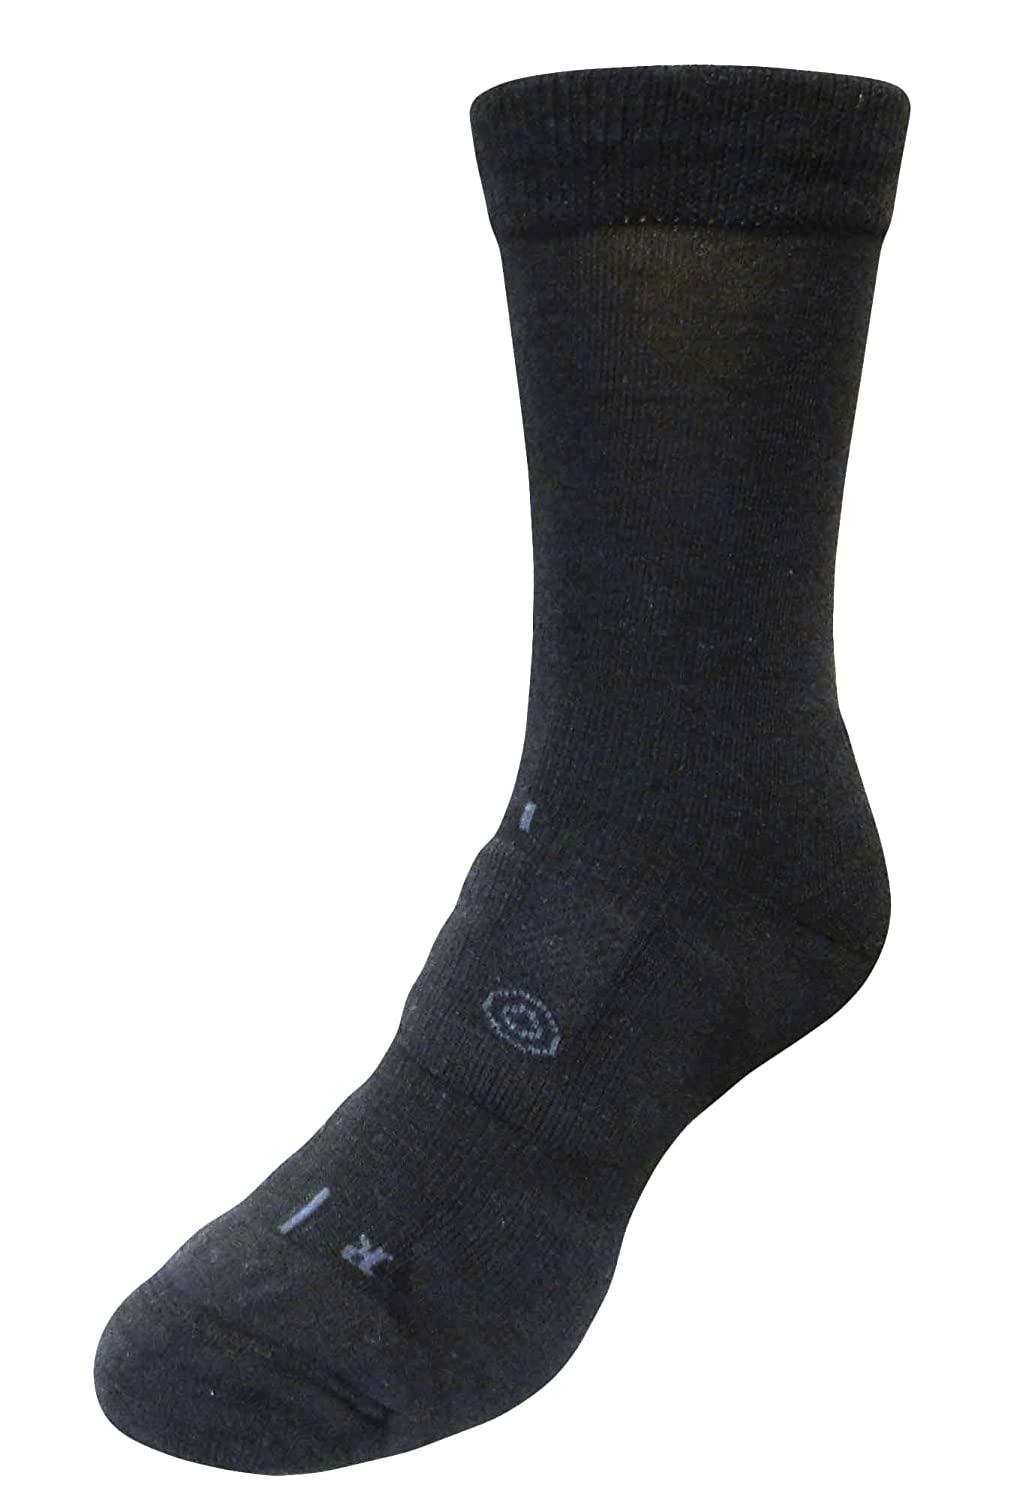 LifeSocks BasePlus Women's Merino Socks with Seacell Active, Black, Large